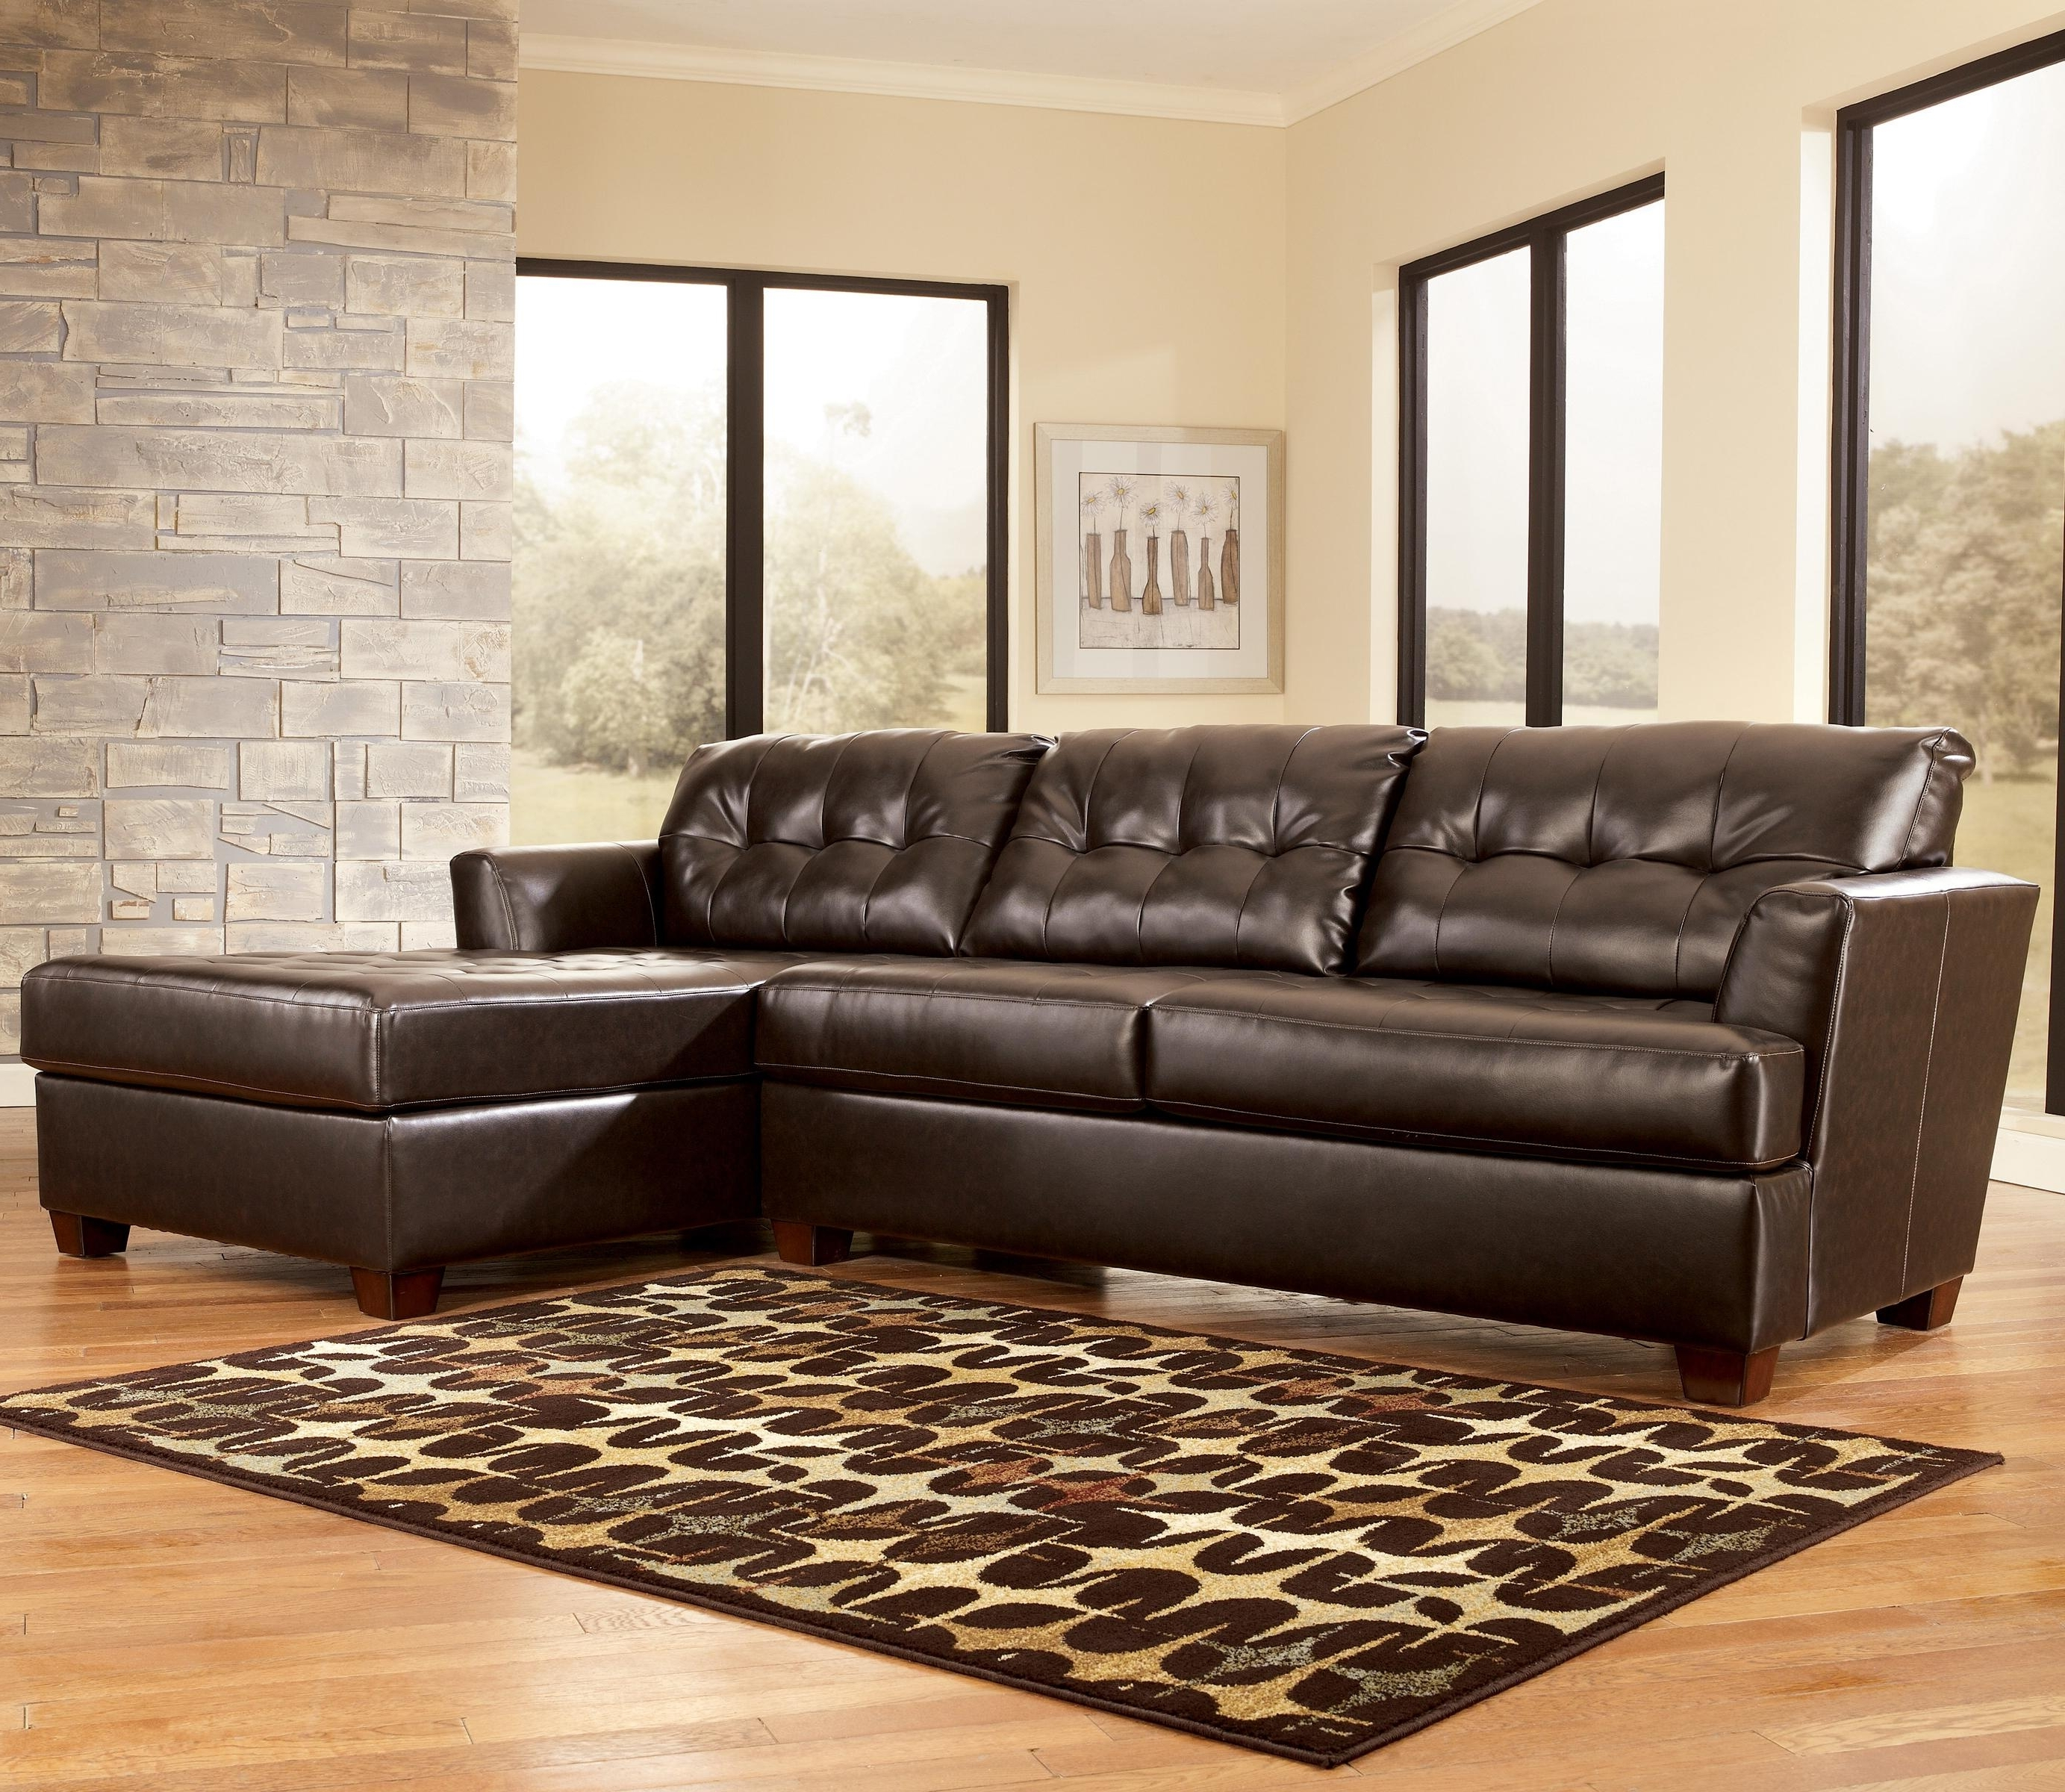 Dixon Durablend – Chocolate Sectional Sofasignature Design Within Most Recent Knoxville Tn Sectional Sofas (View 2 of 20)